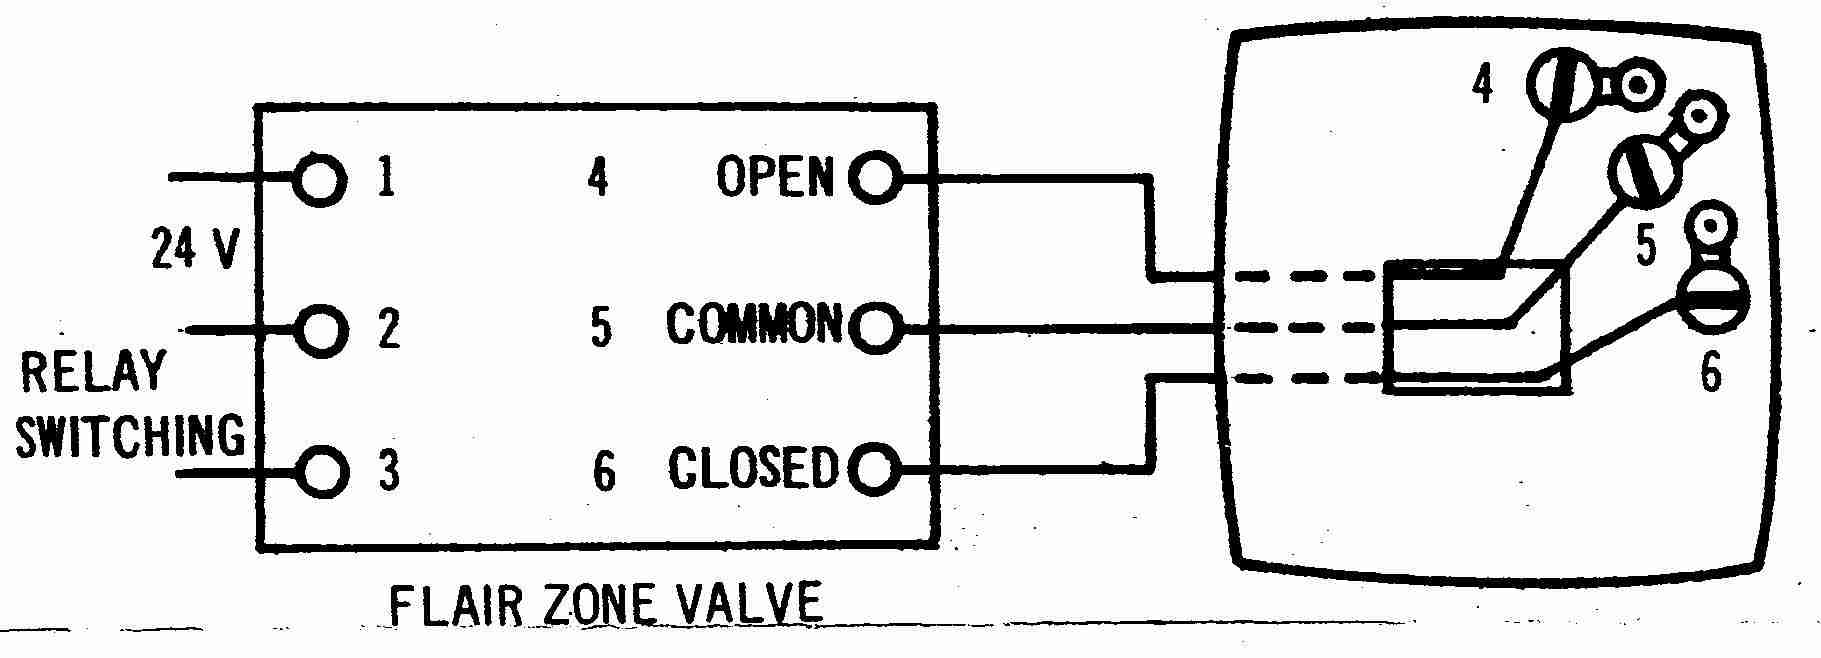 Honeywell 2wire Thermostat Wiring Problems Block And Schematic Rth2300 Instructions Download Diagrams Room For Hvac Systems Rh Inspectapedia Com Wire Colors